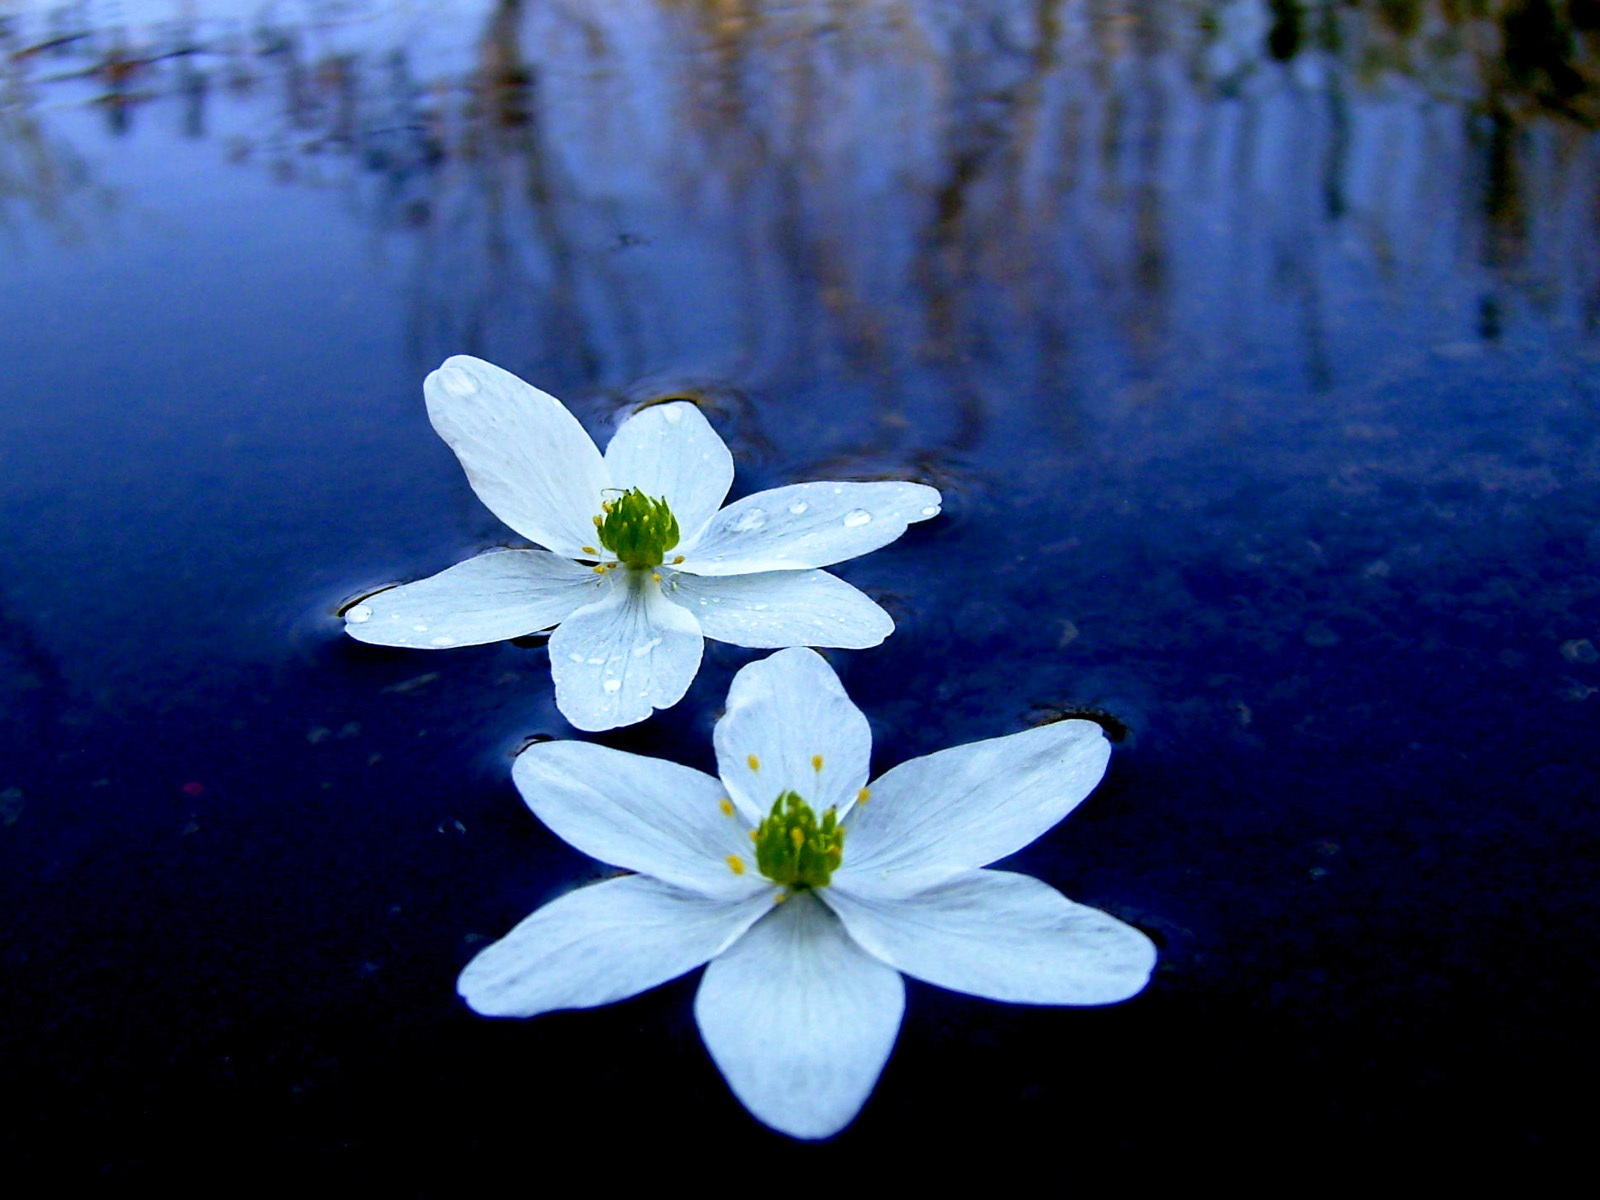 Water flower wallpaper 1600x1200.